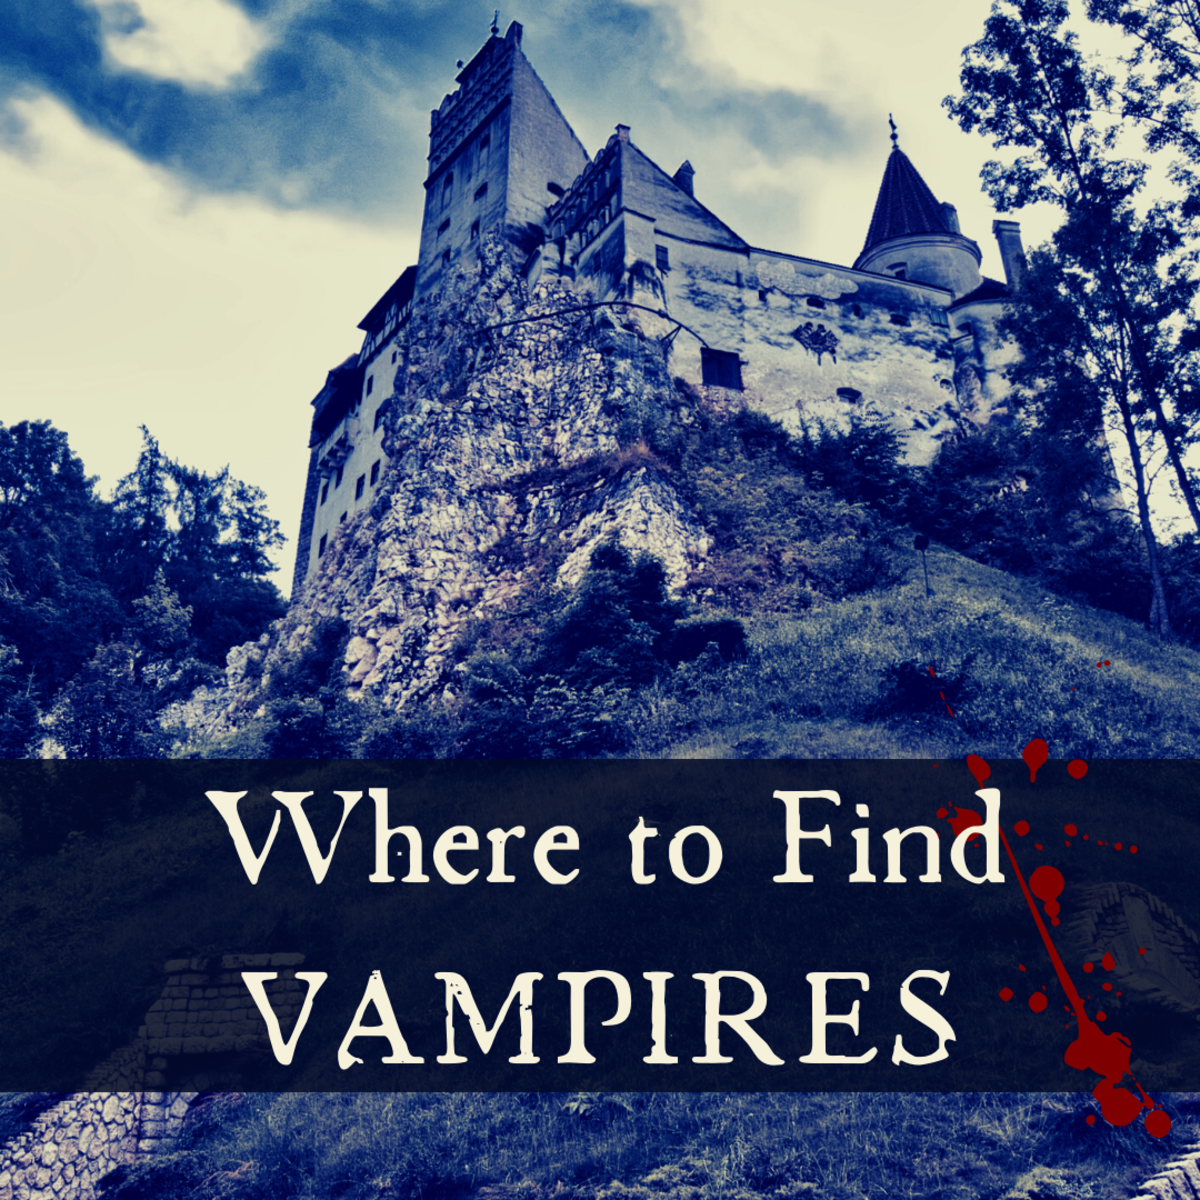 Discover six sites around the world where vampires may lurk.